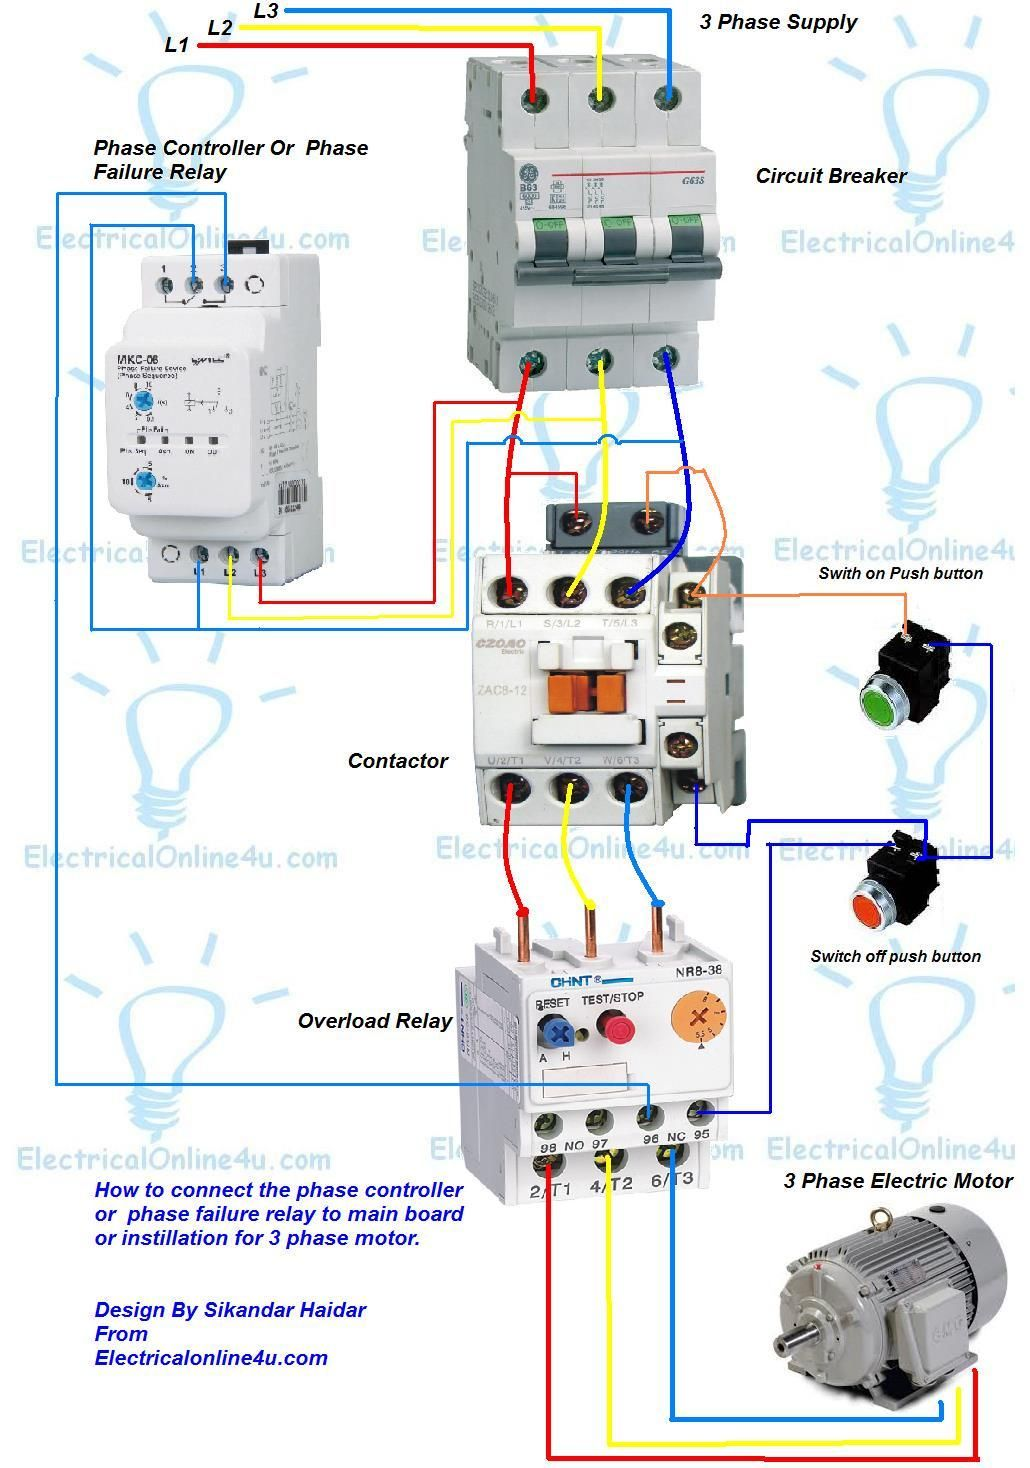 phase controller wiring / phase failure relay diagram